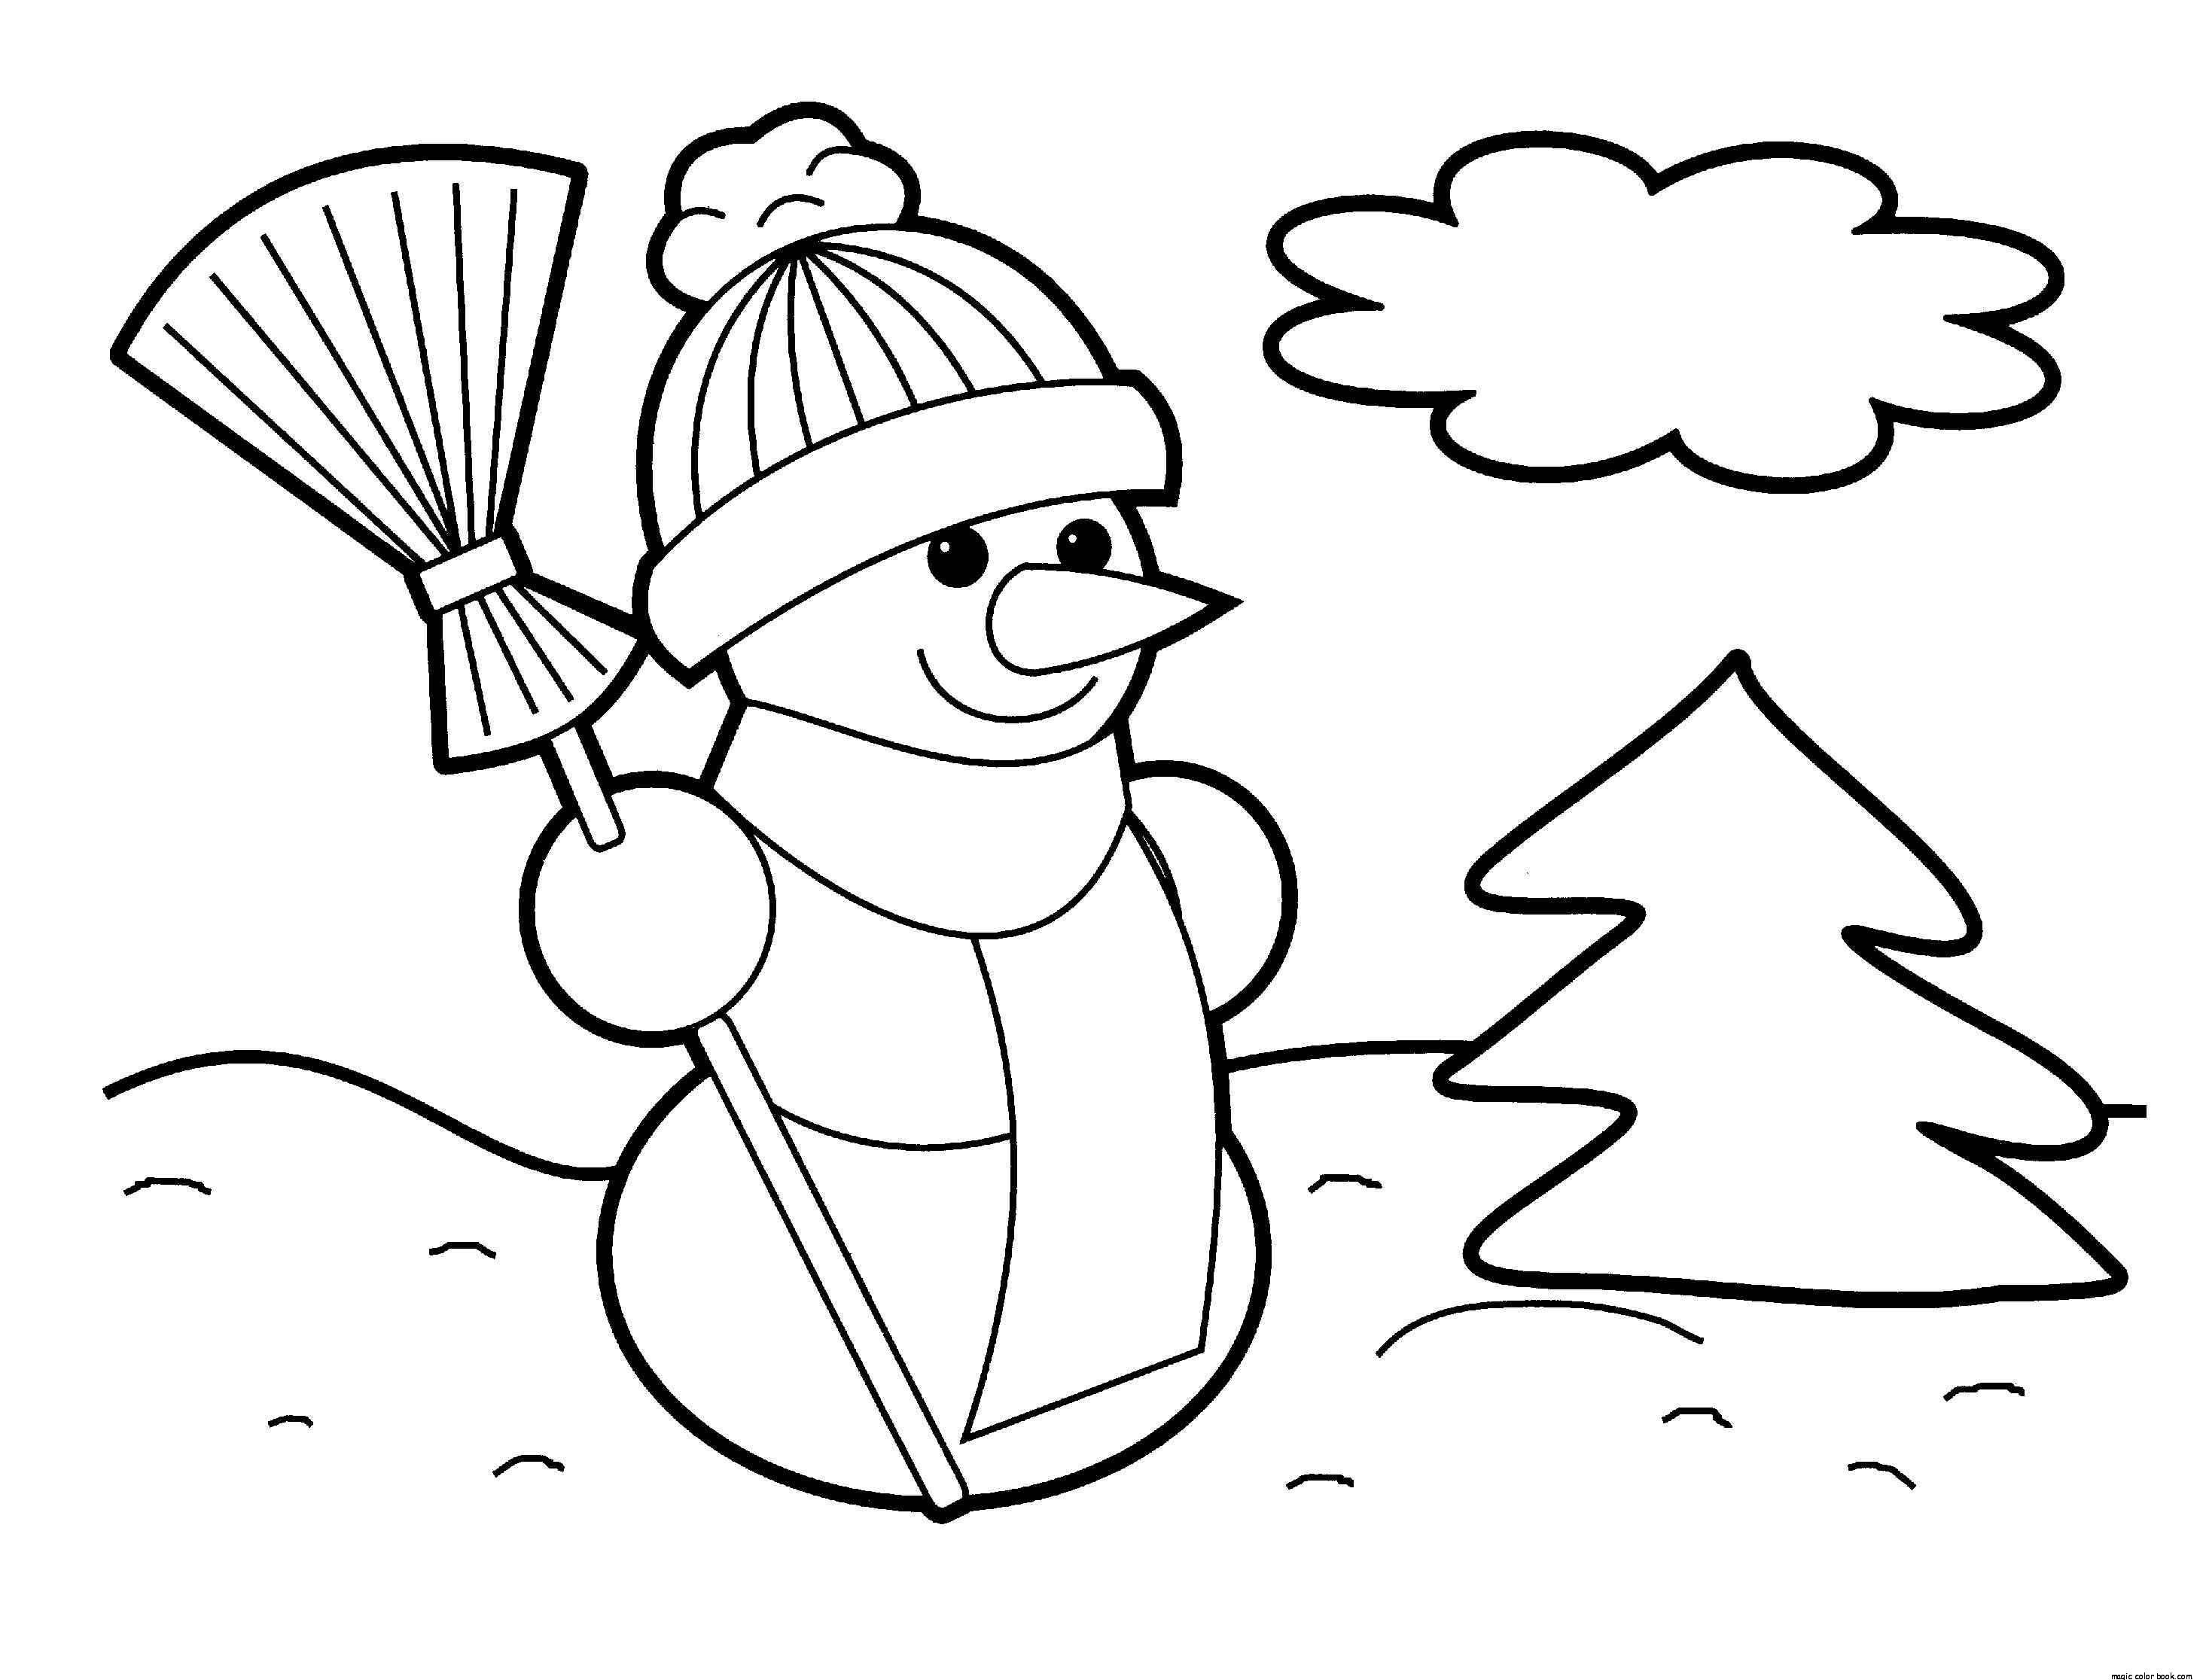 Coloring pages printable free christmas - Free Coloring Pages For Christmas To Print Winter Free Online Color Pages For Kids Magic